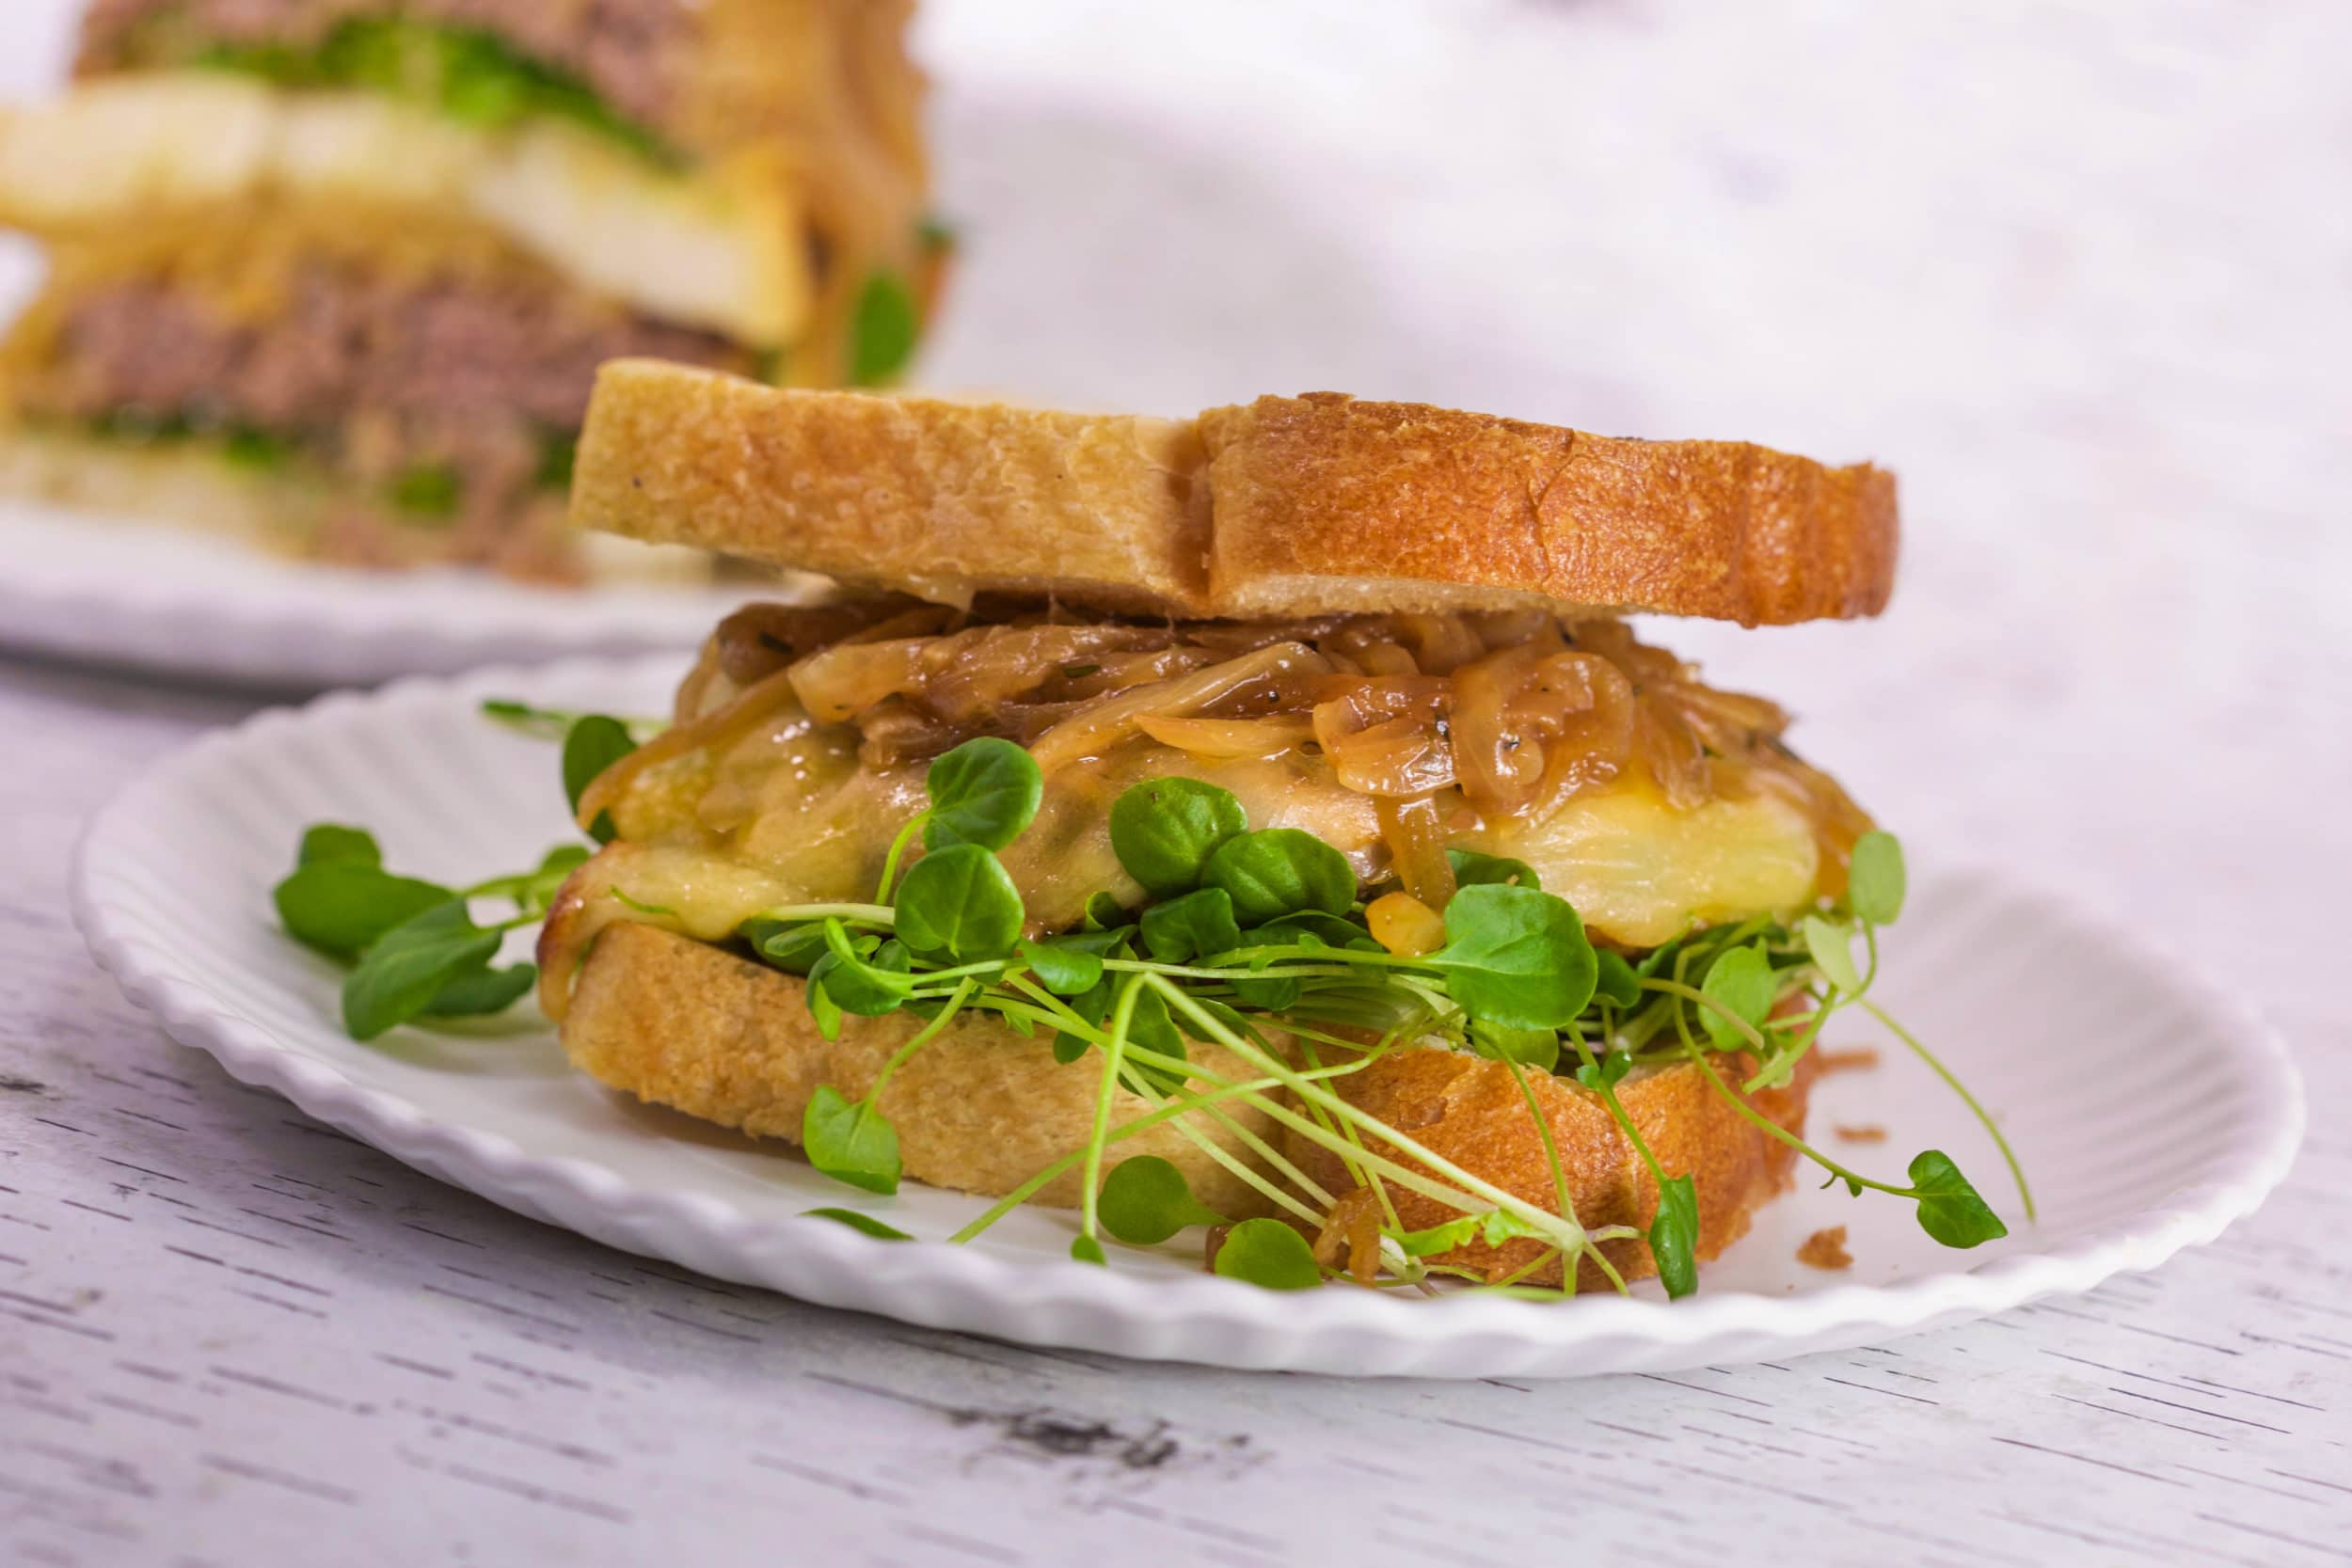 Buttery Burgers and Onions on Toast